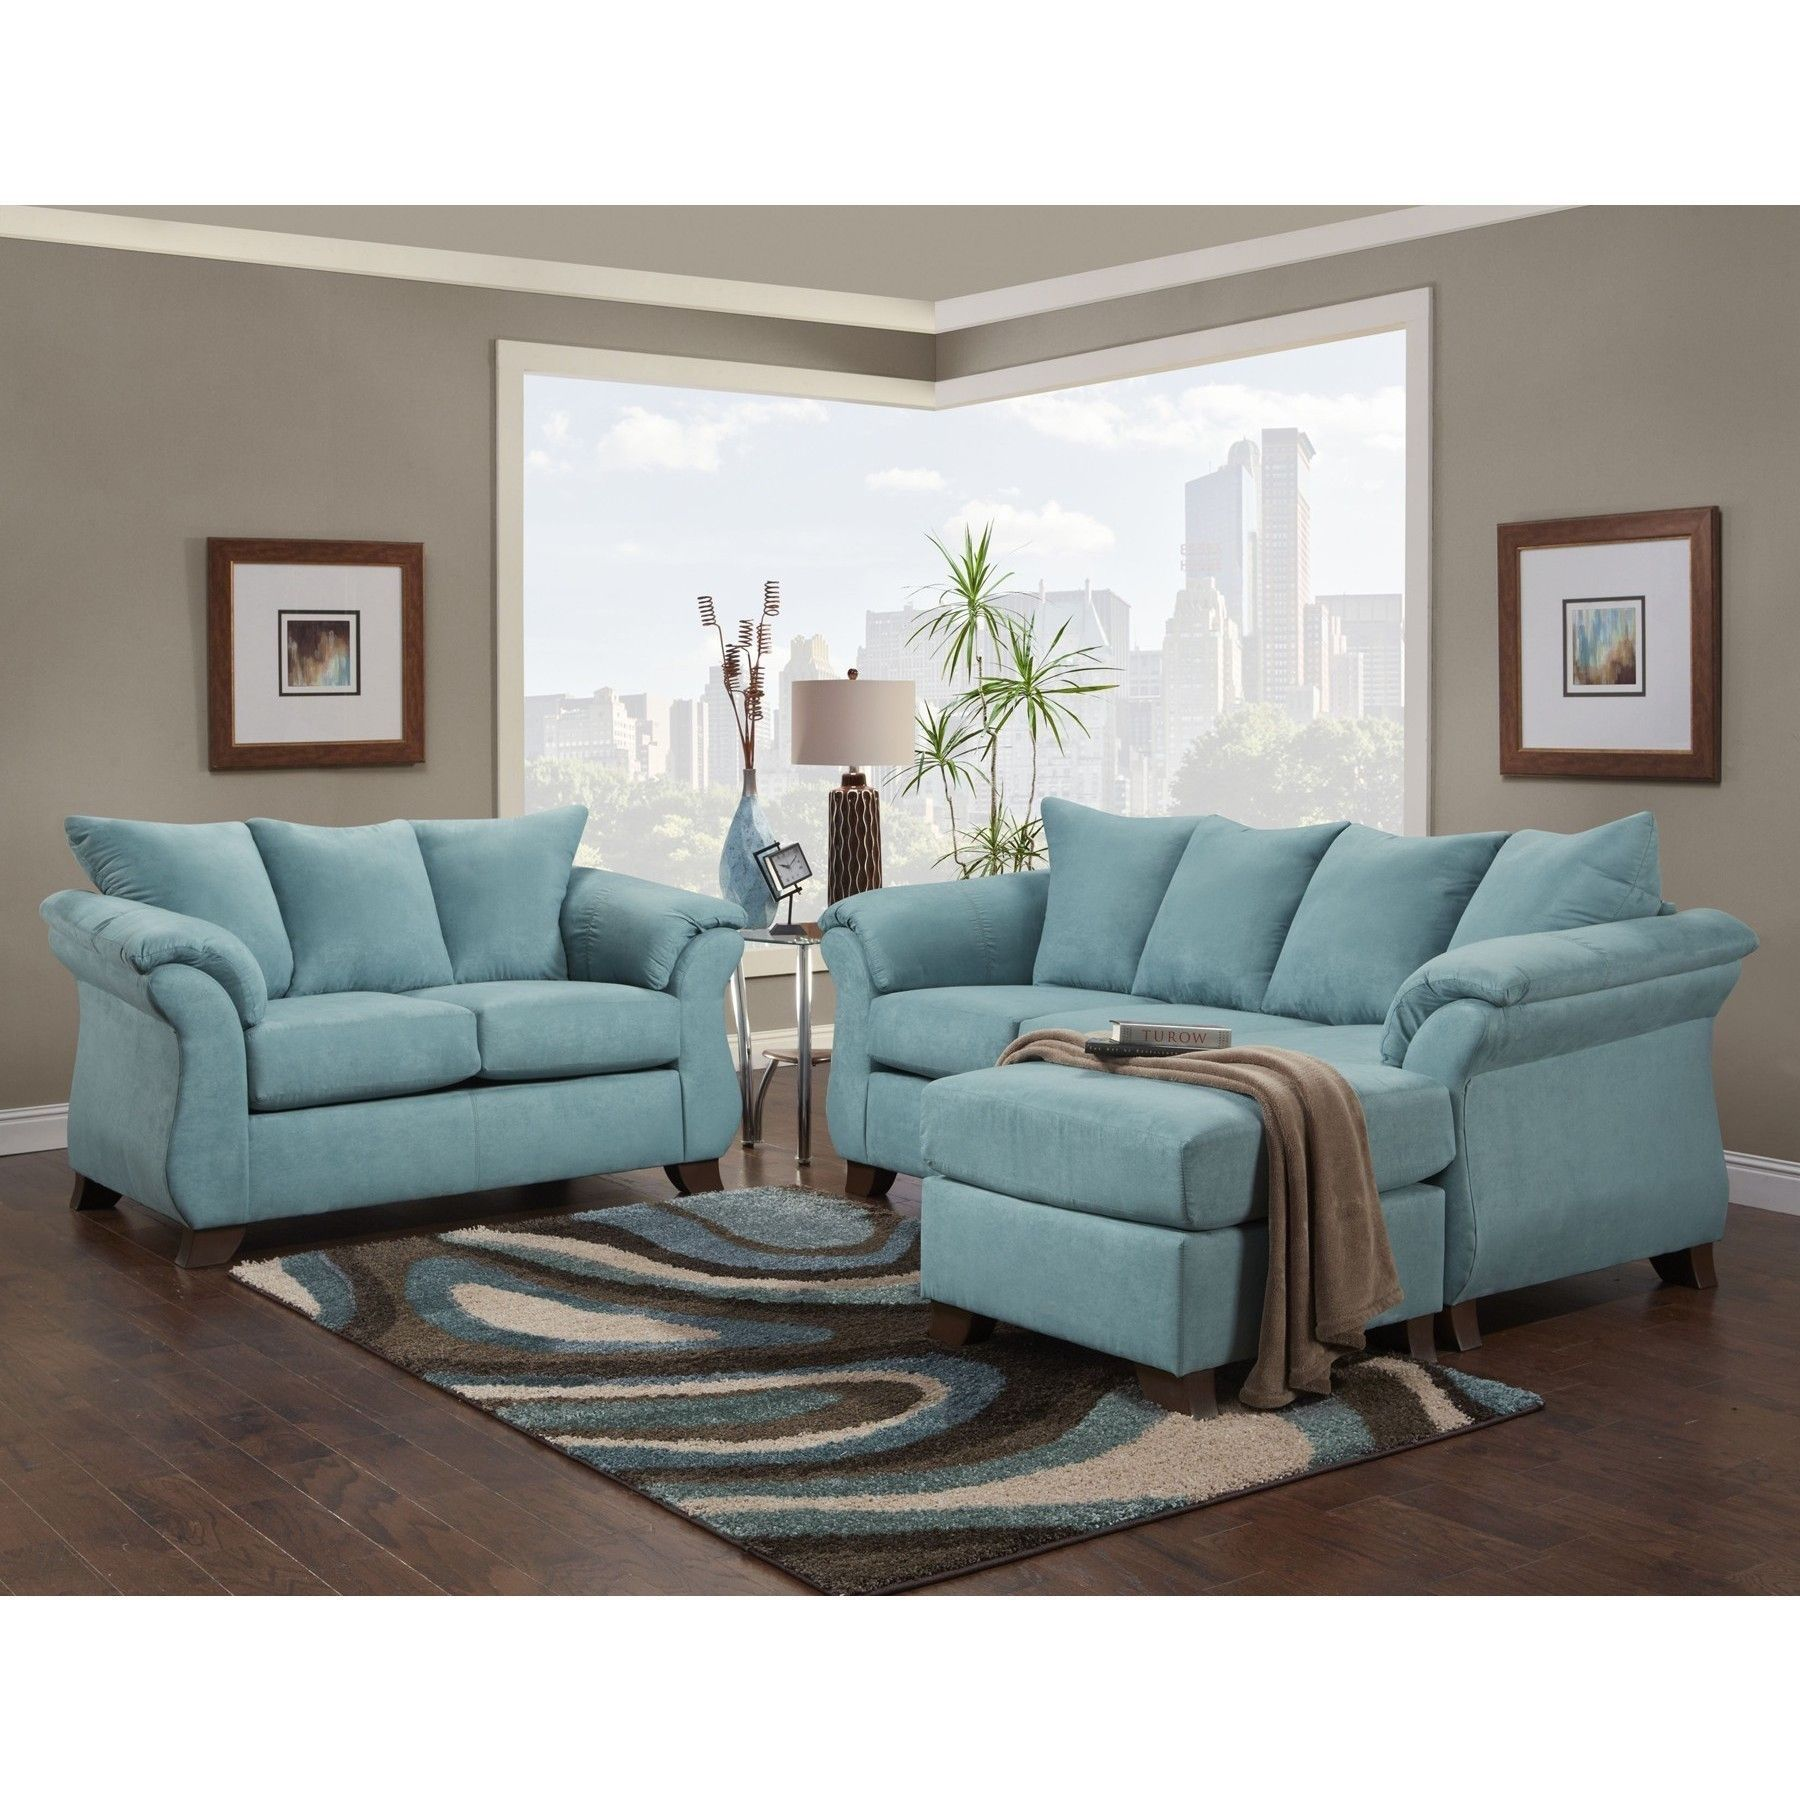 sofa trendz cailyn sofa/ chaise | online furniture, free delivery